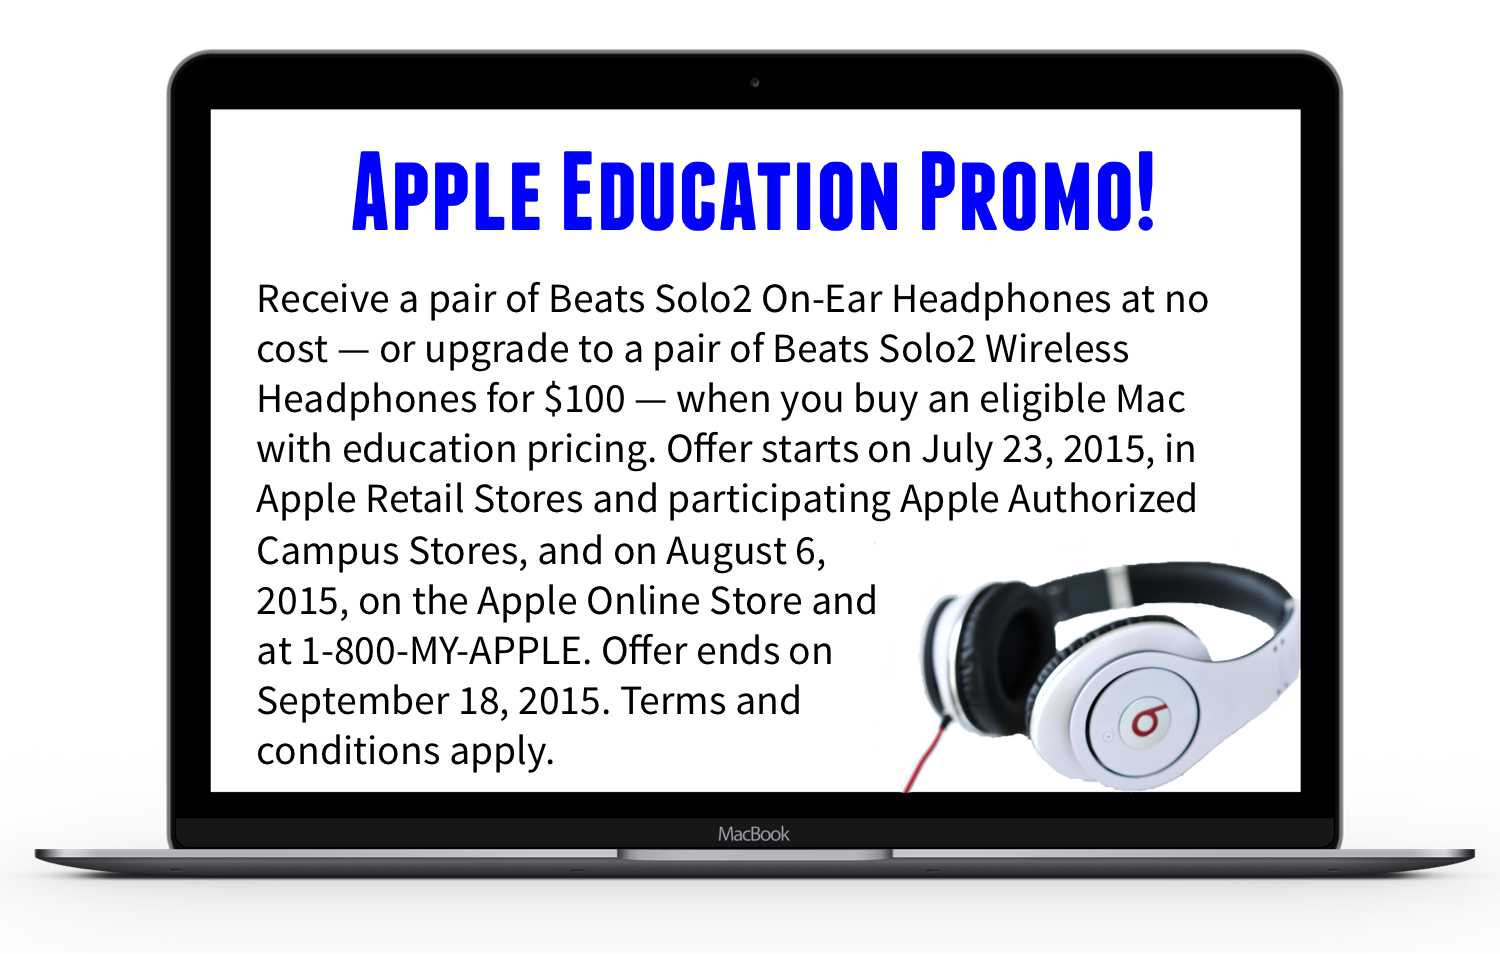 Apple Education Promo